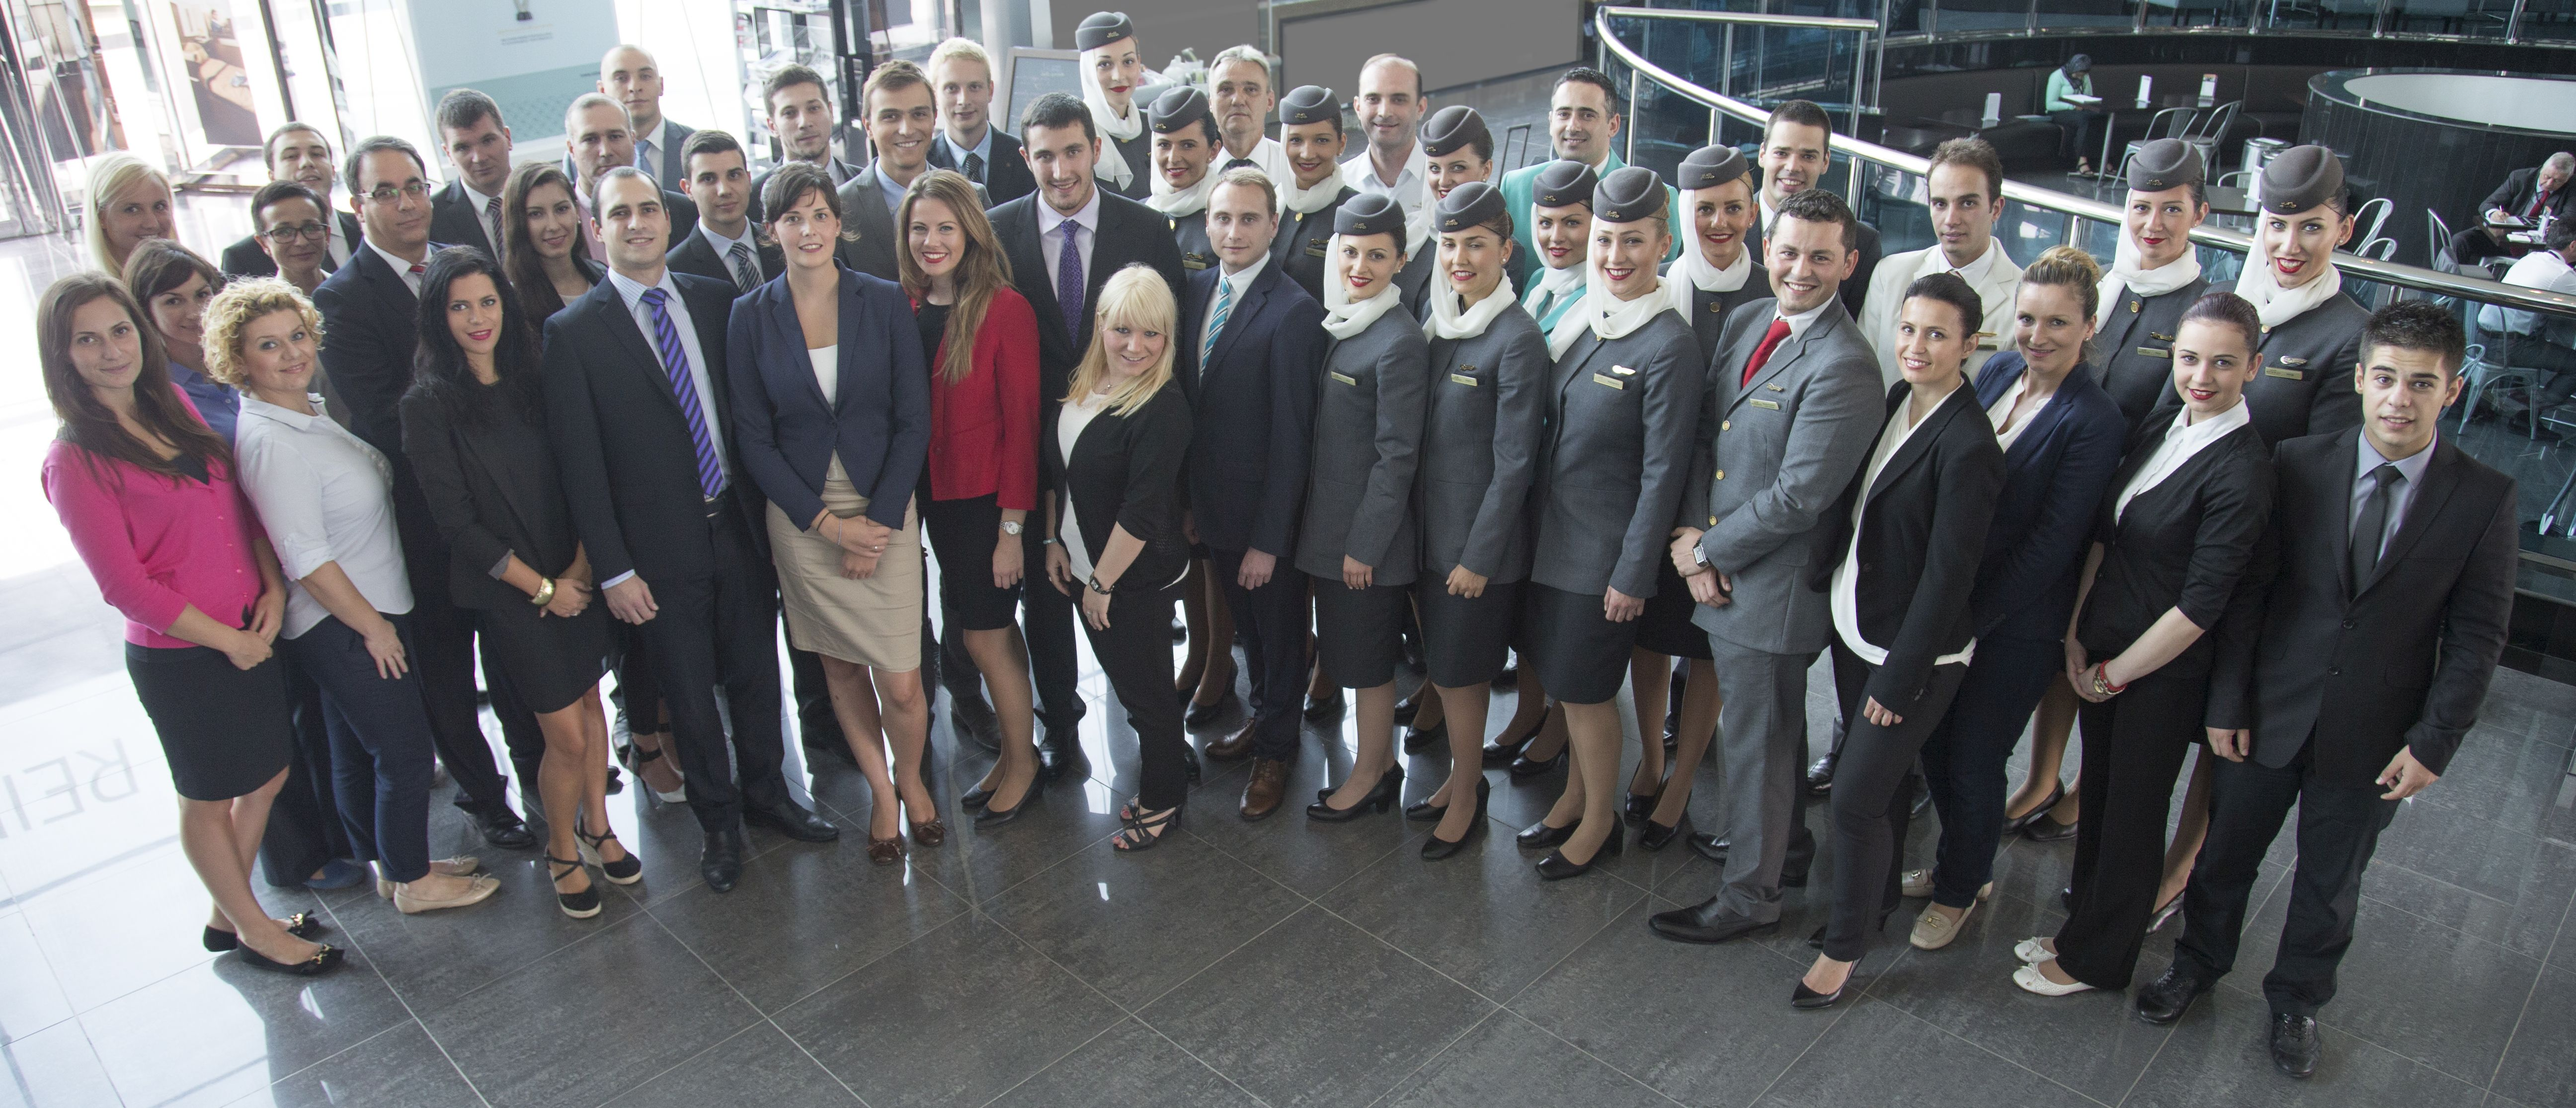 Some of the Serbian employees who work at Etihad Airways